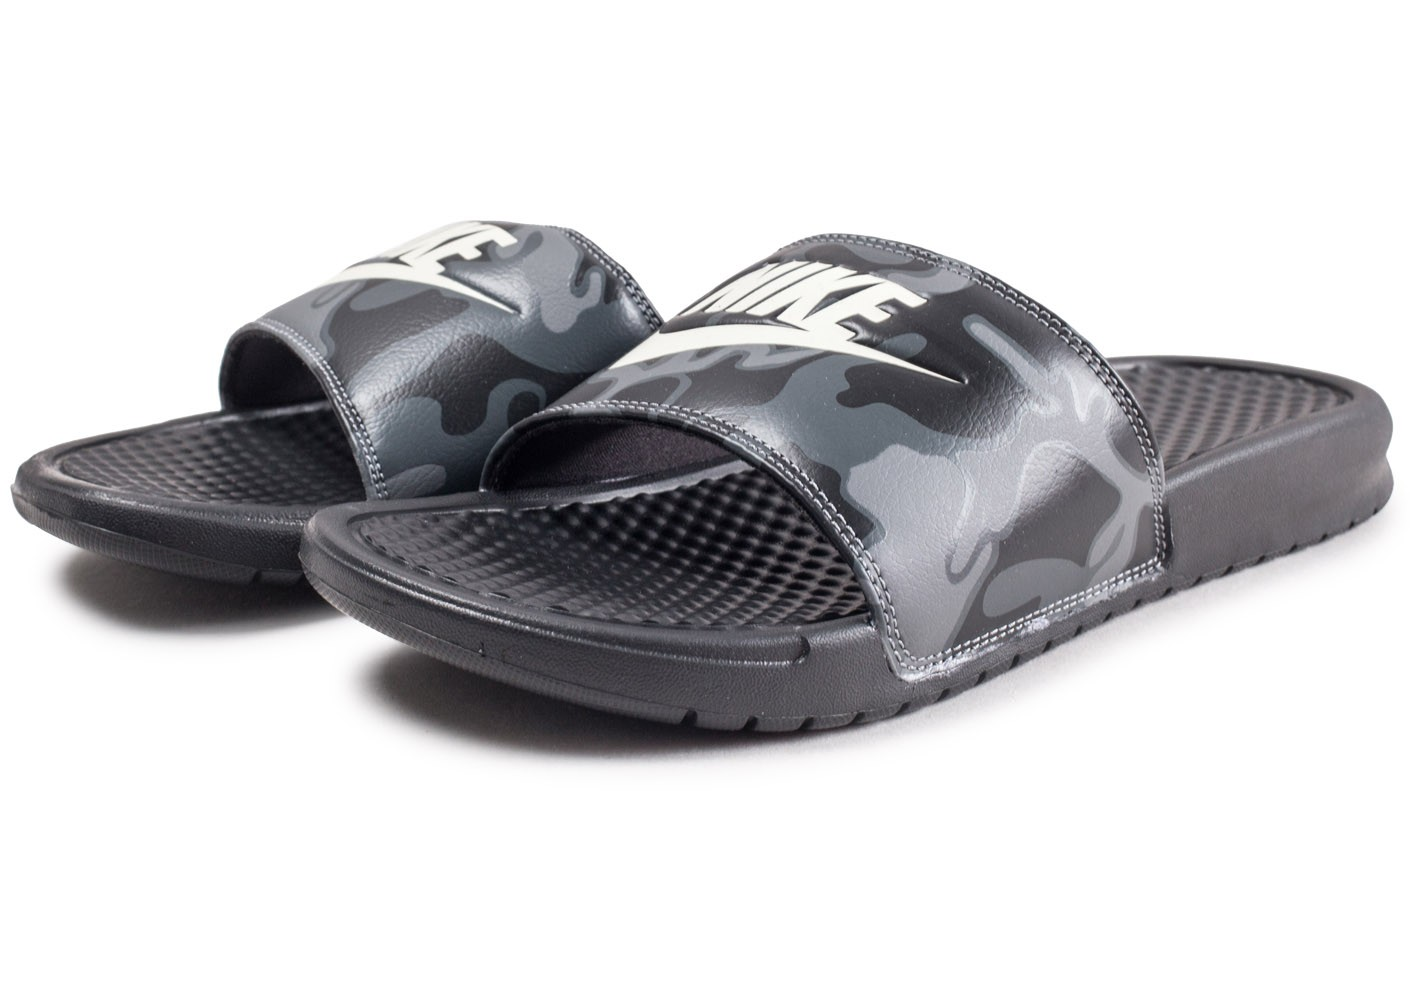 buy online bc279 20f9b ... Chaussures Nike Sandales Benassi Just Do It Printed noires vue  intérieure ...